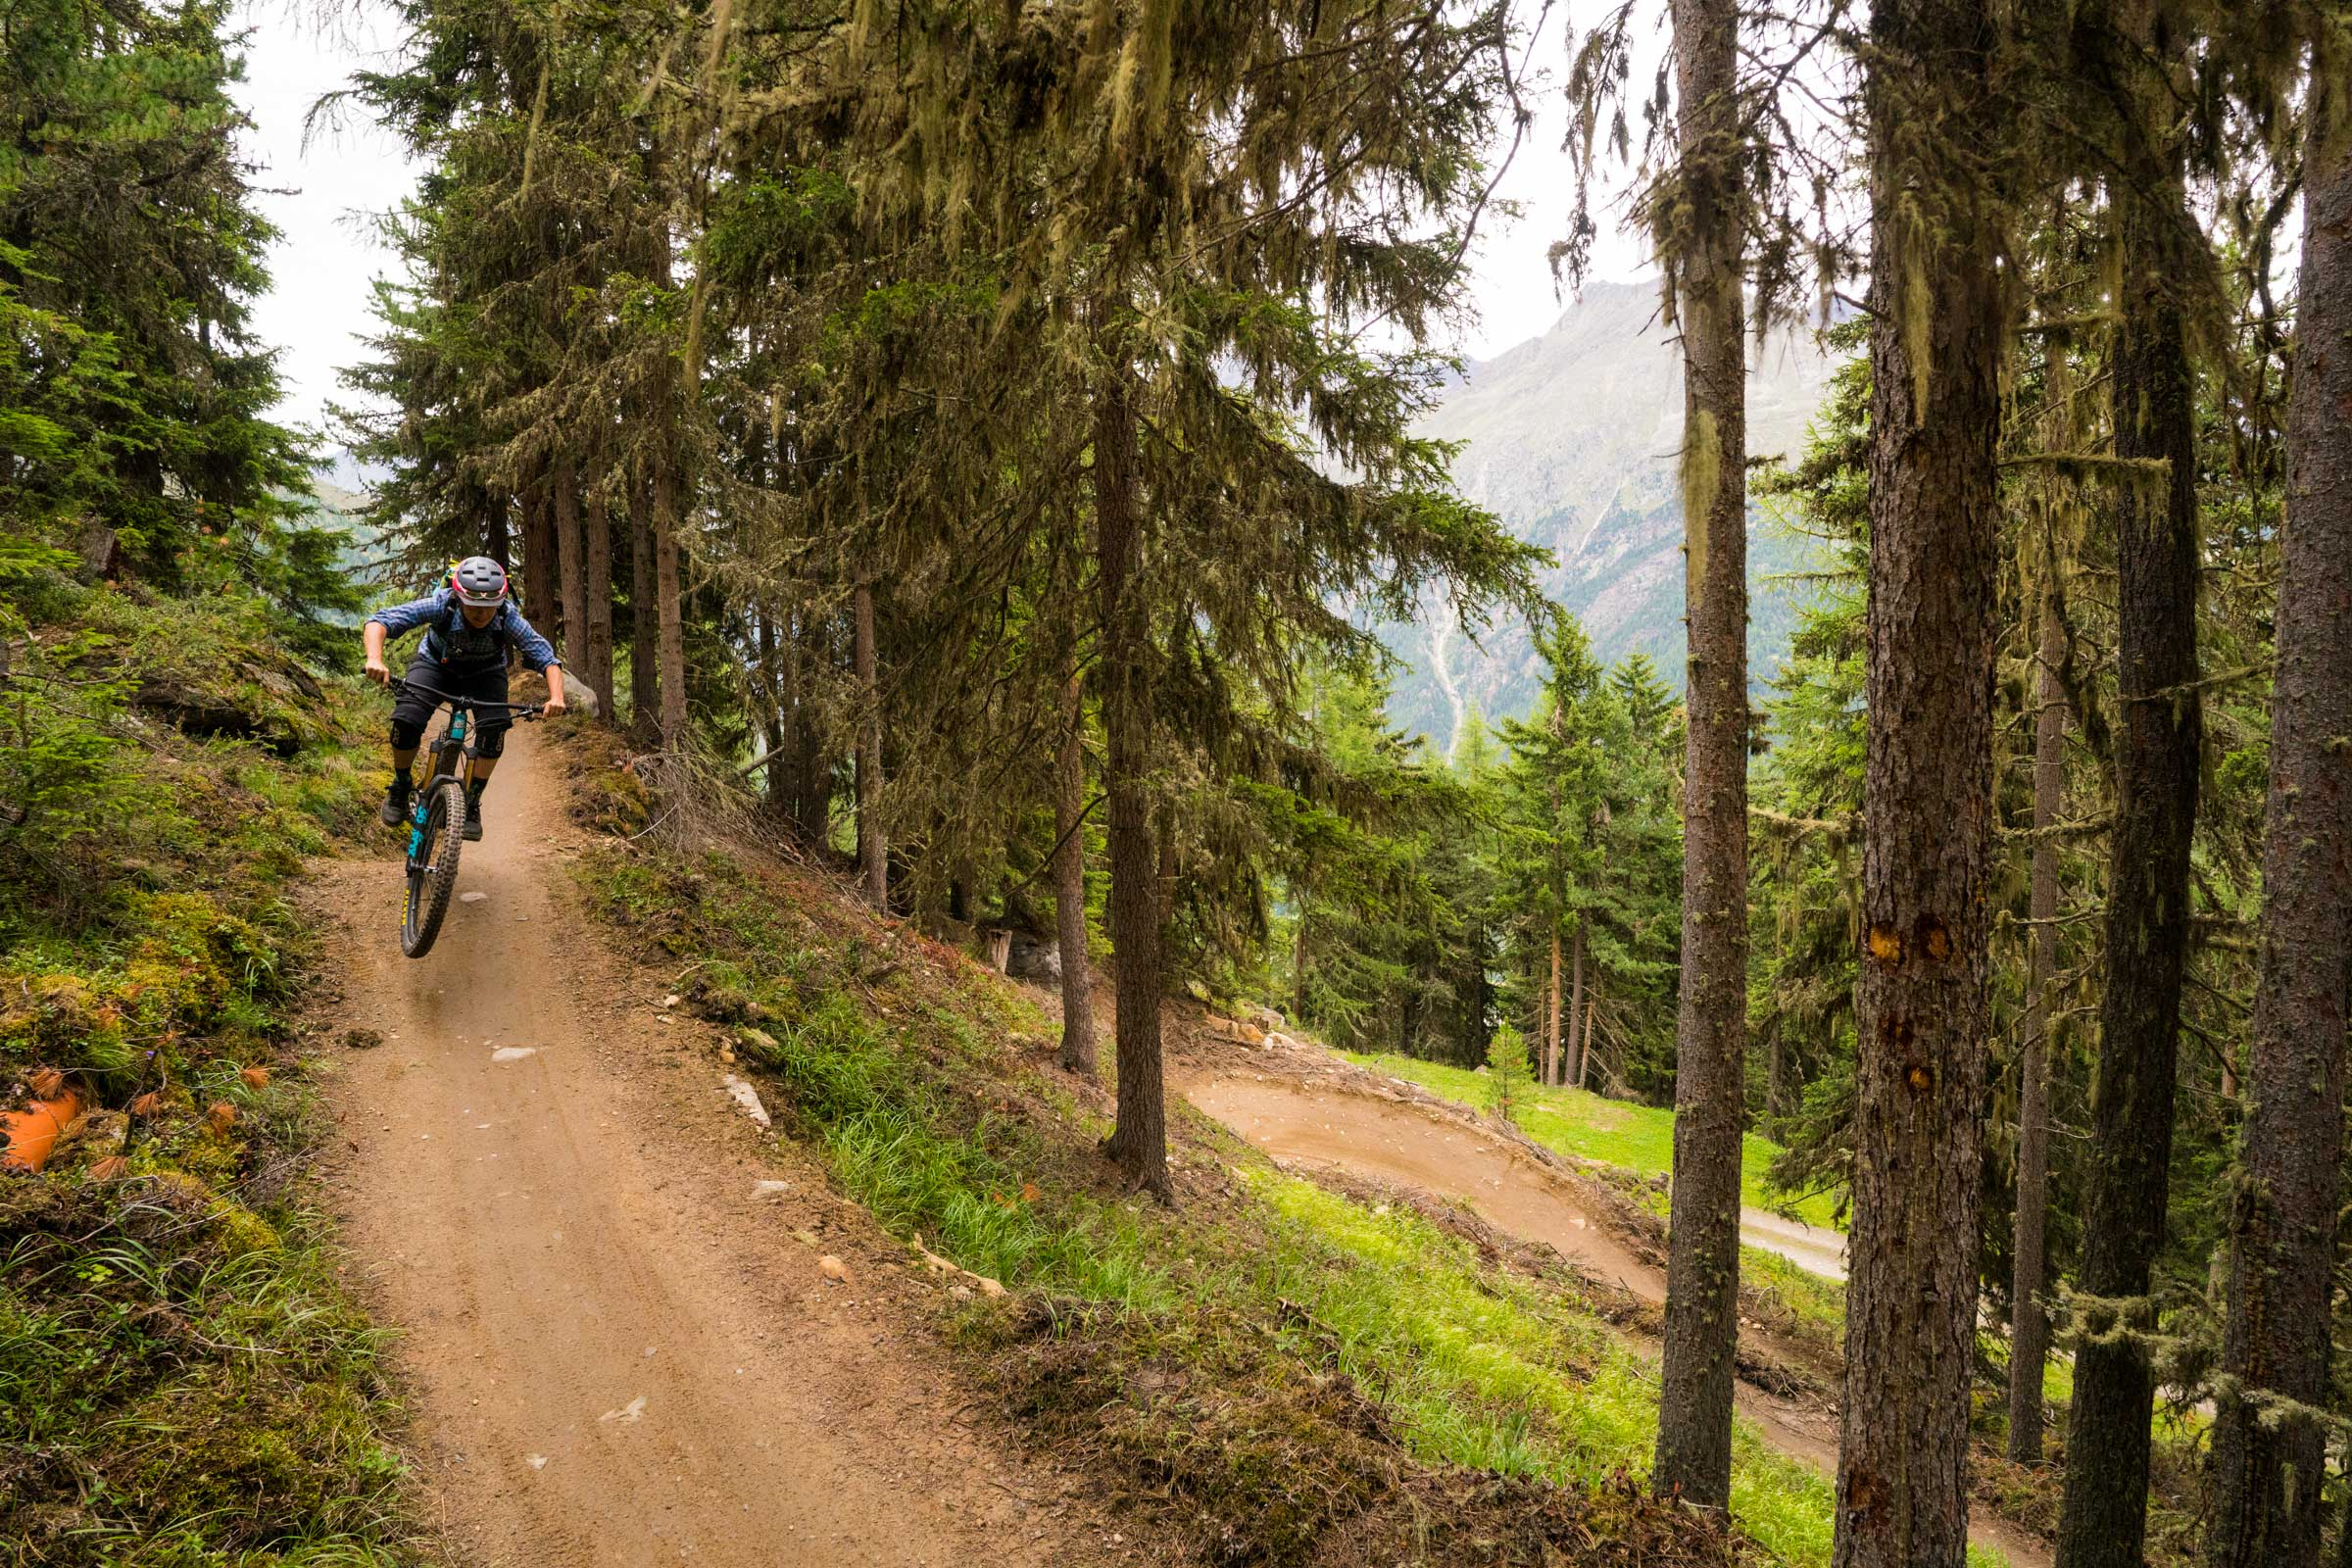 Ohn Line - Flow Trails Bike Republic Sölden